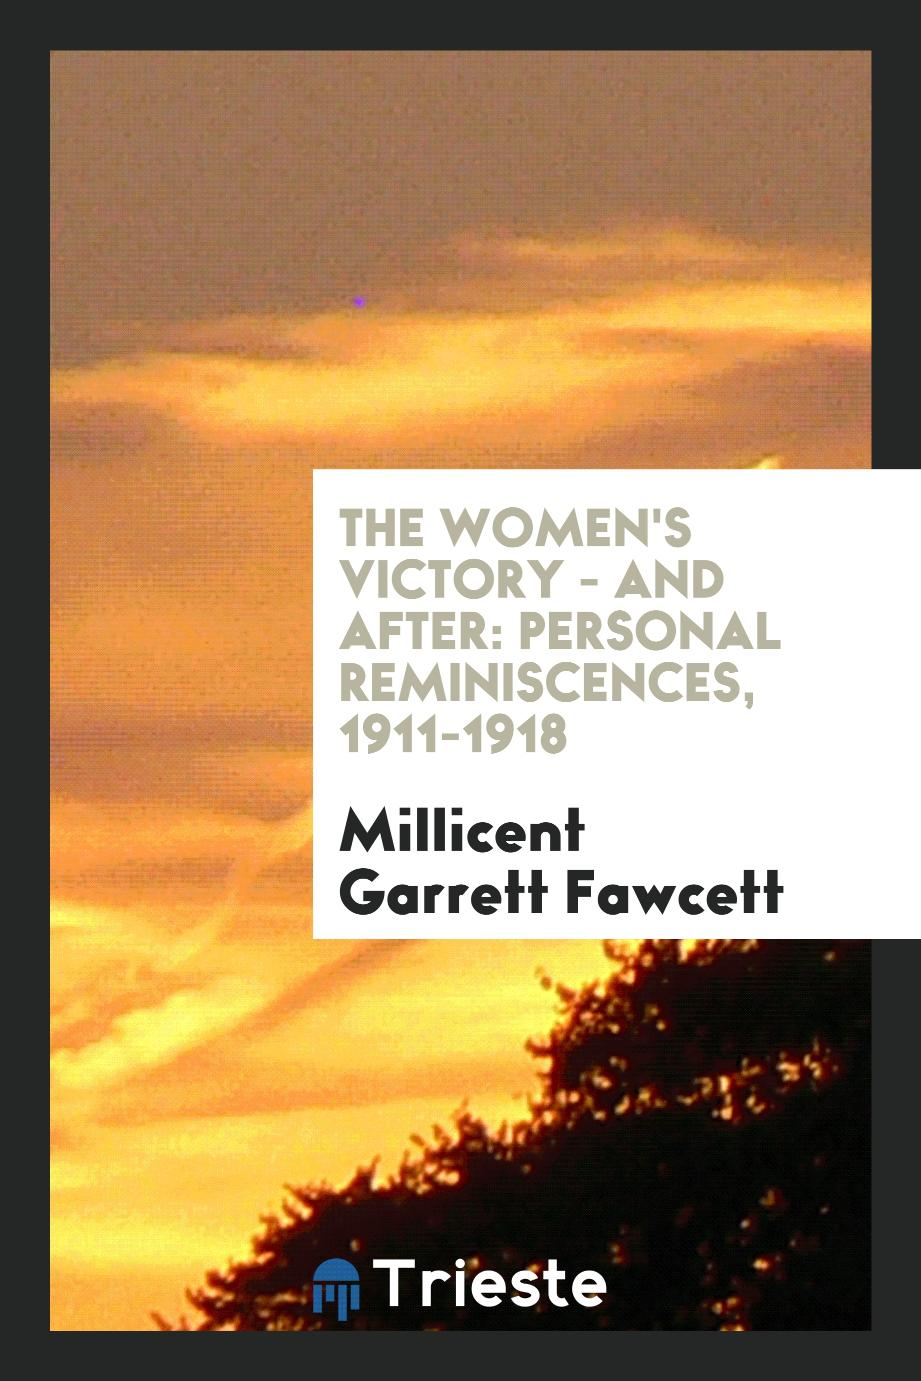 The women's victory - and after: personal reminiscences, 1911-1918